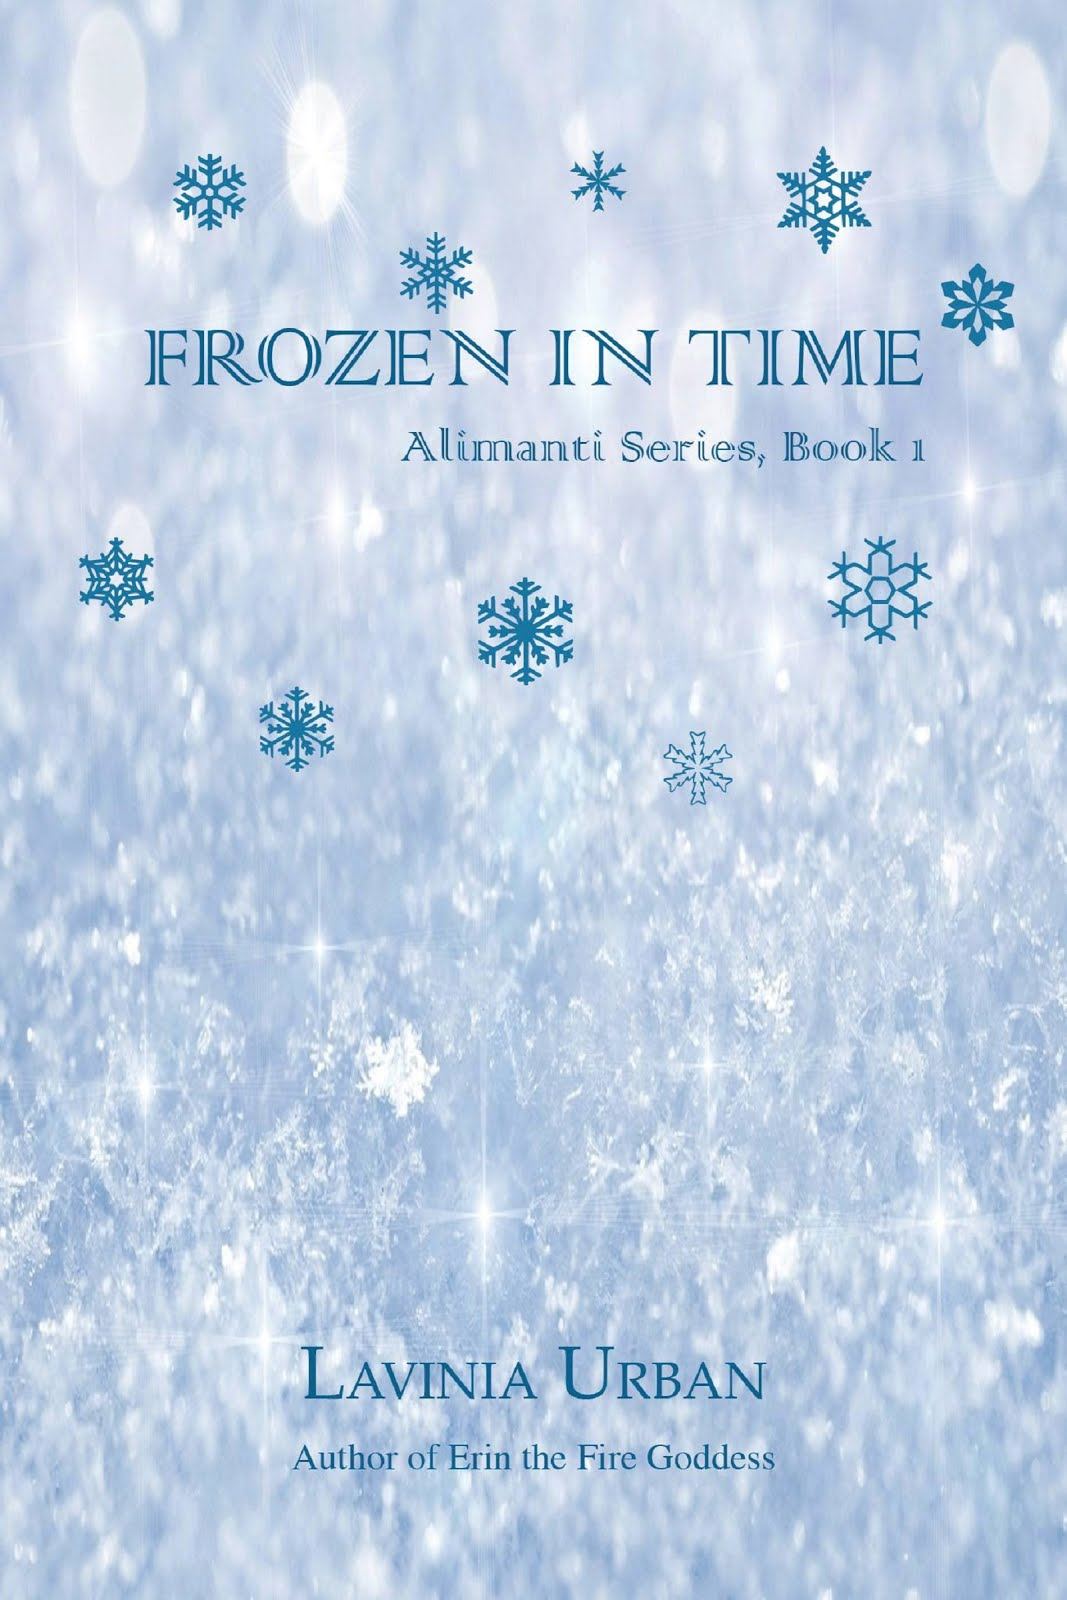 Frozen in Time: Alimanti series, Book 1